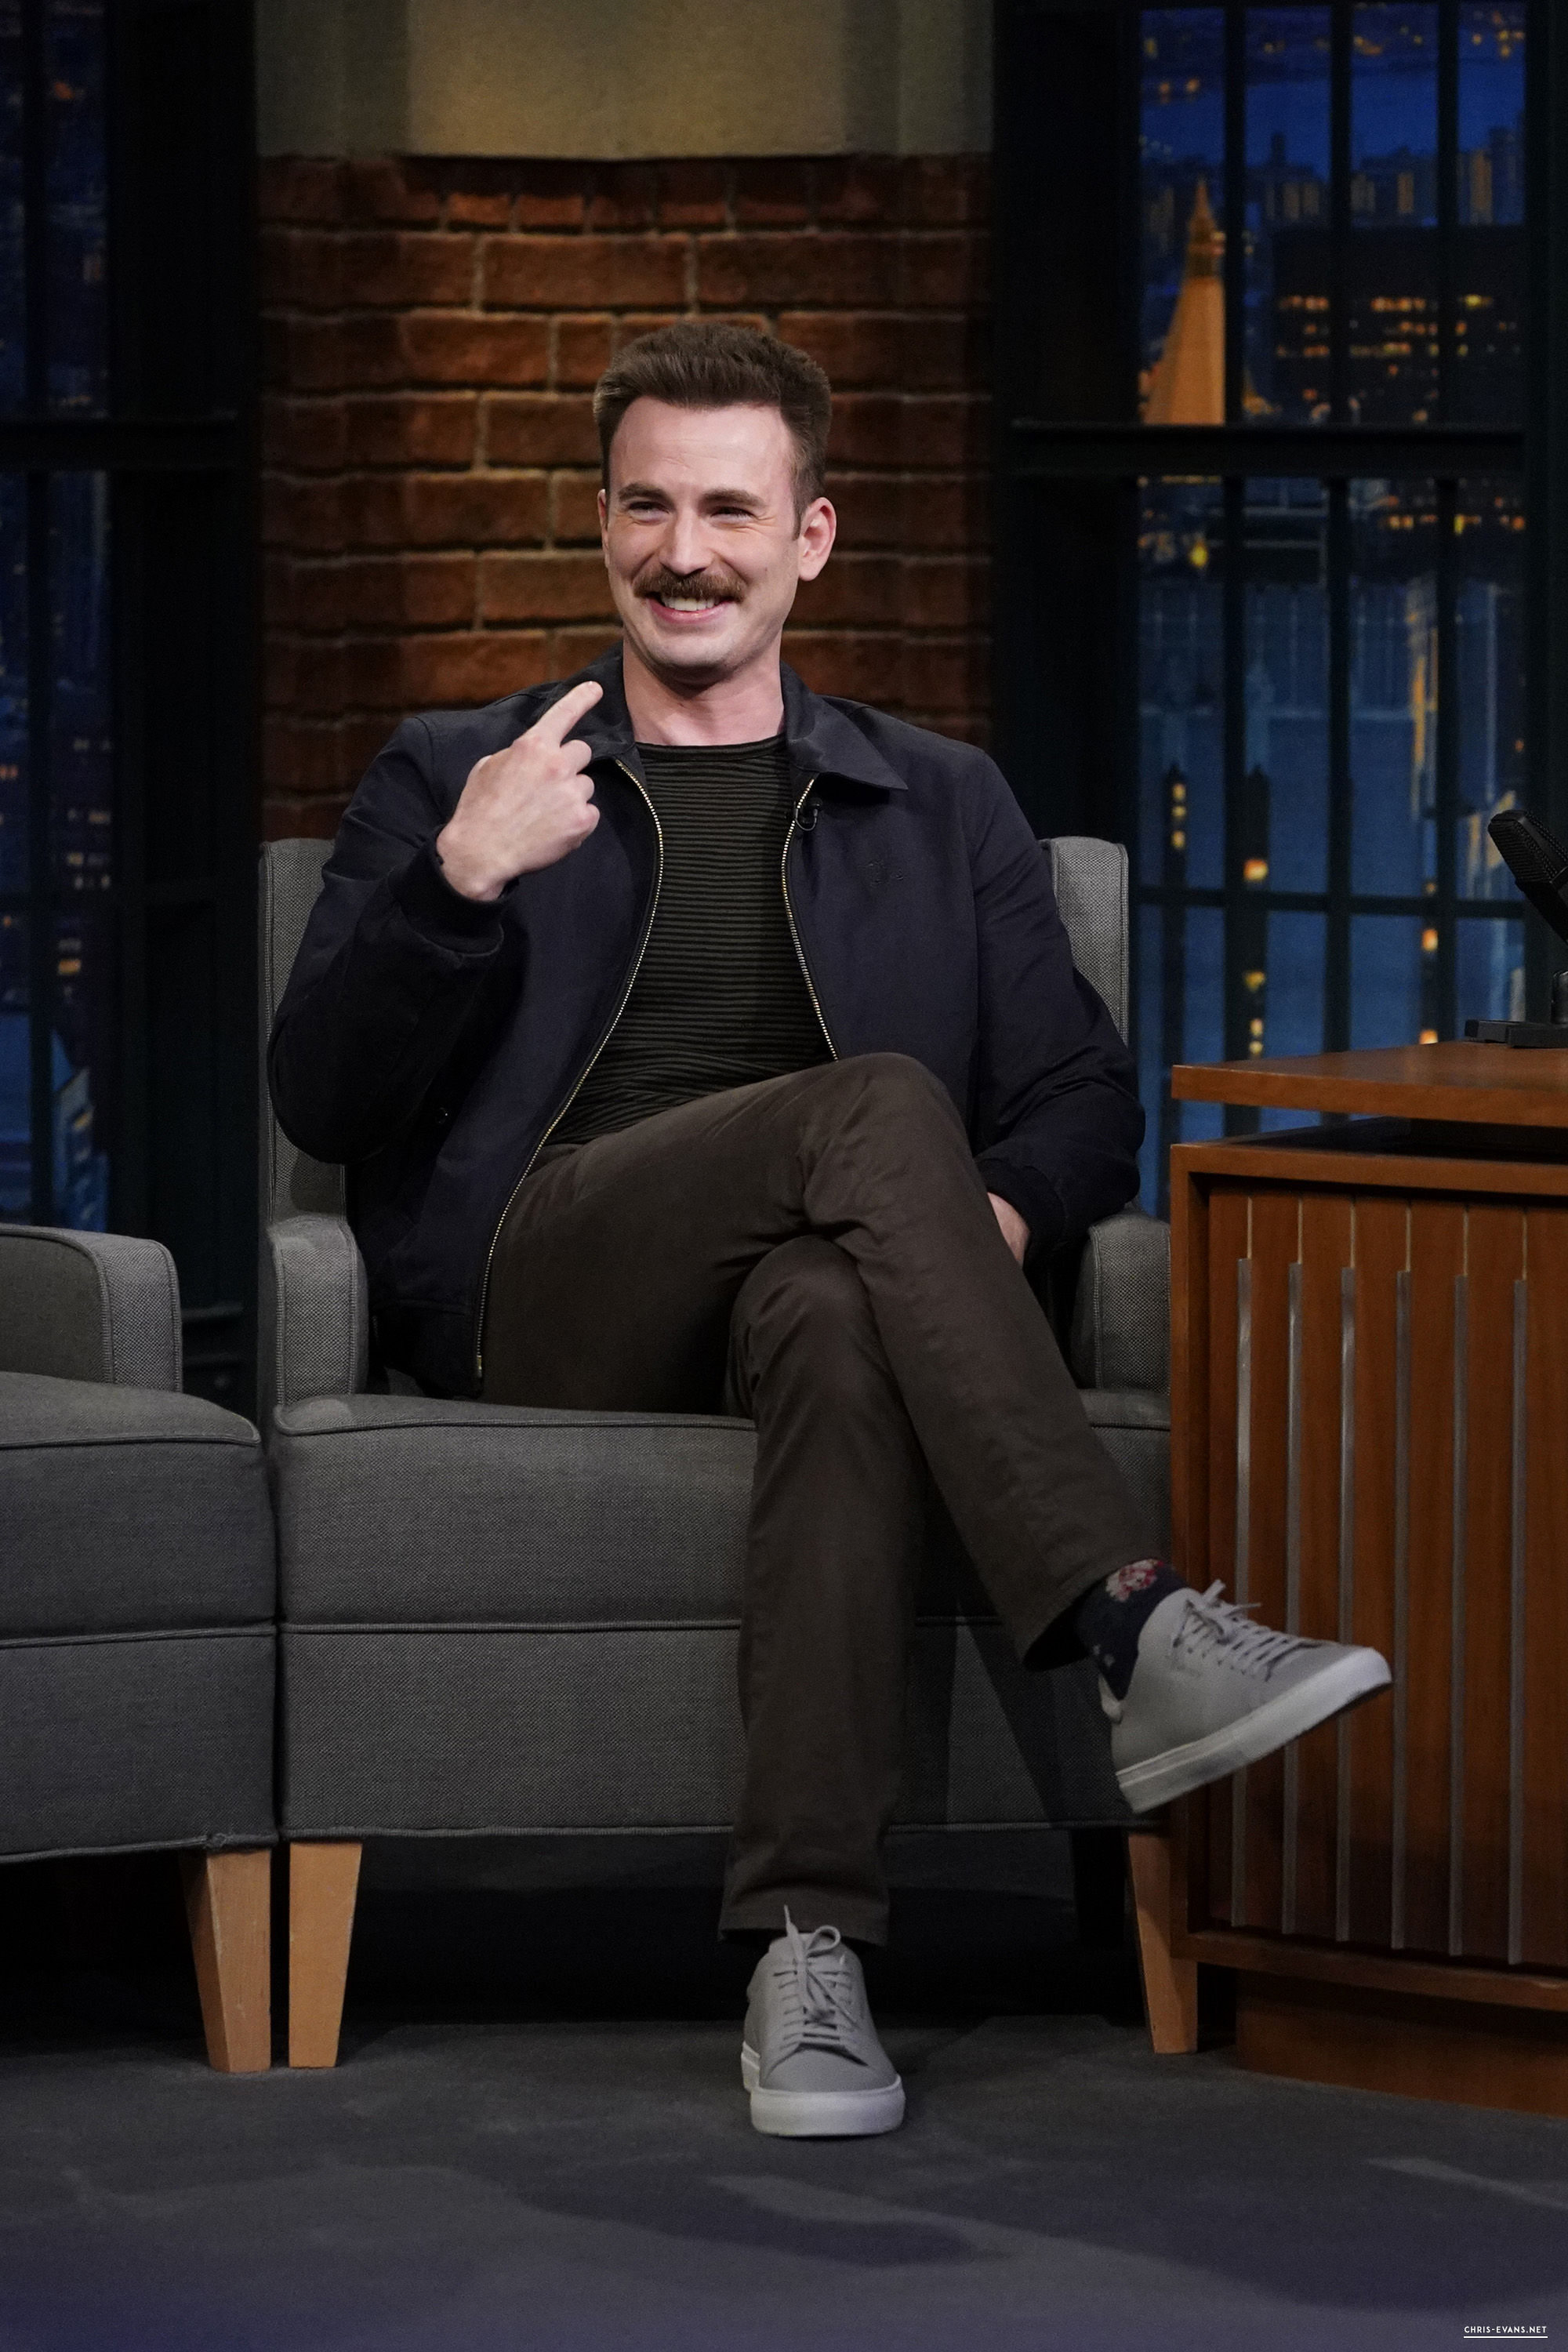 http://chris-evans.net/photos/albums/Appearances/2018/04%2023%20Late%20Night%20with%20Seth%20Meyers/005.jpg